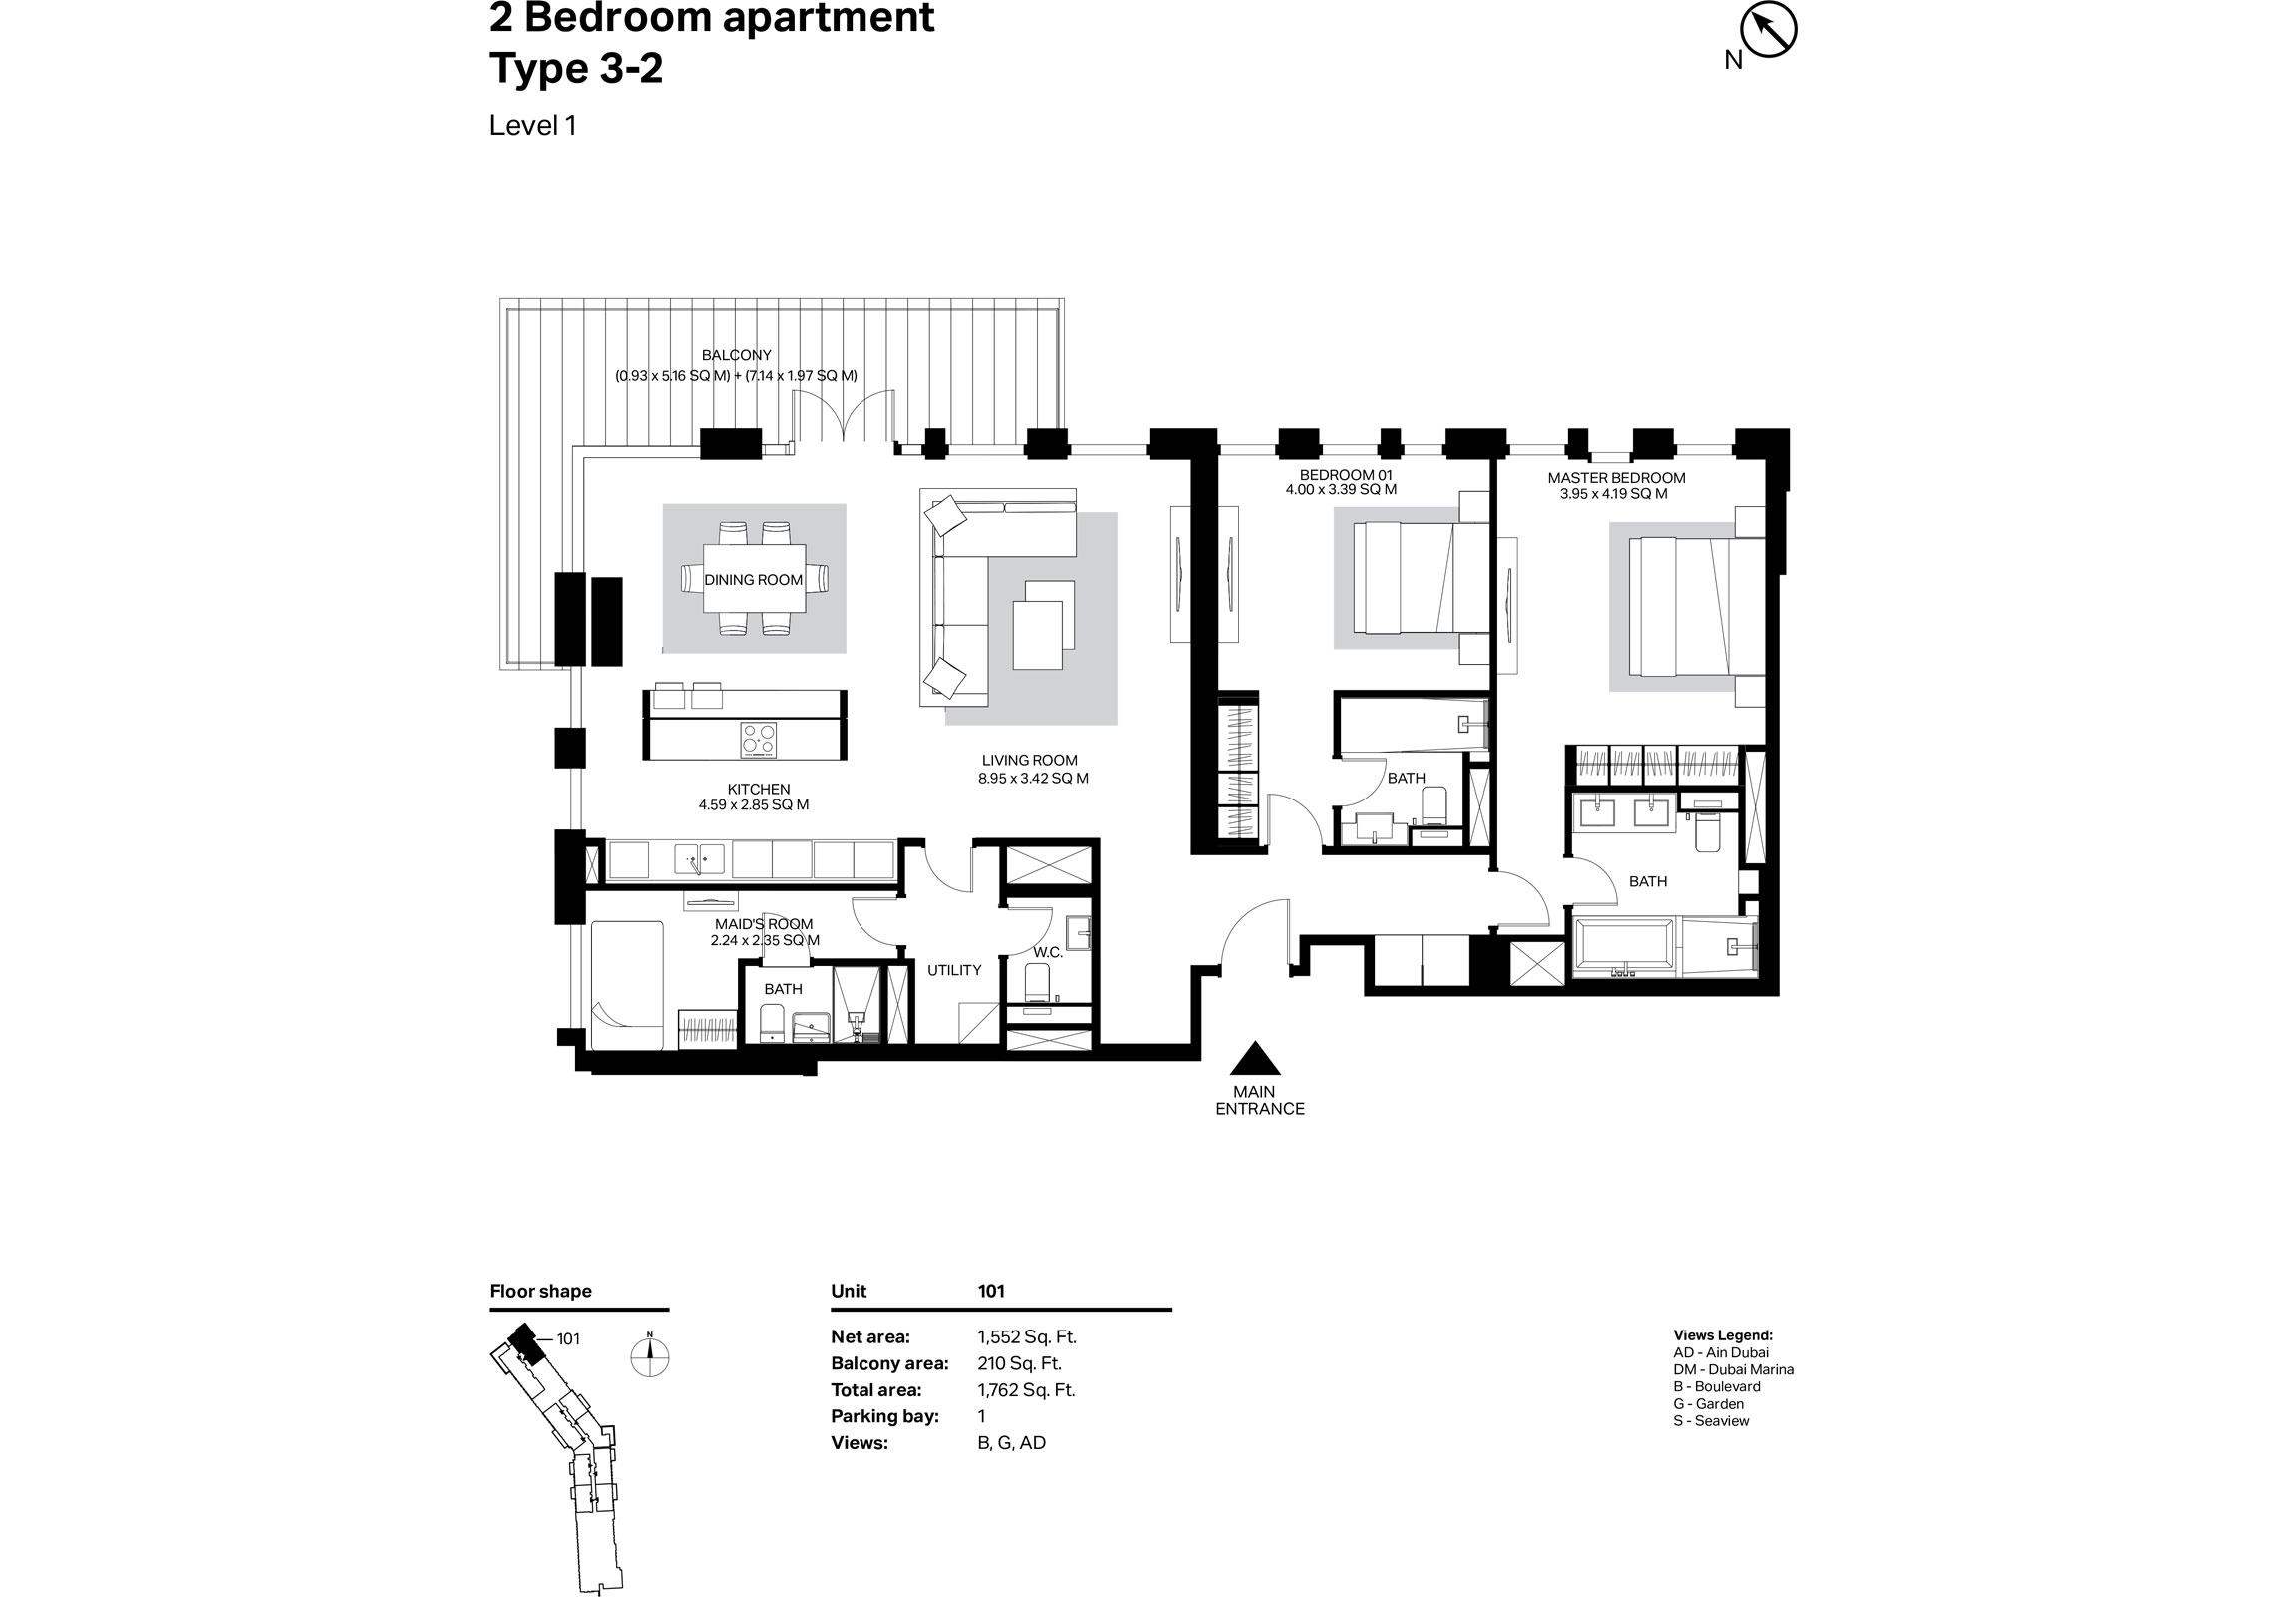 Building 2 - 2 Bedroom Type 3-2 Level 1 Size 1762    sq. ft.